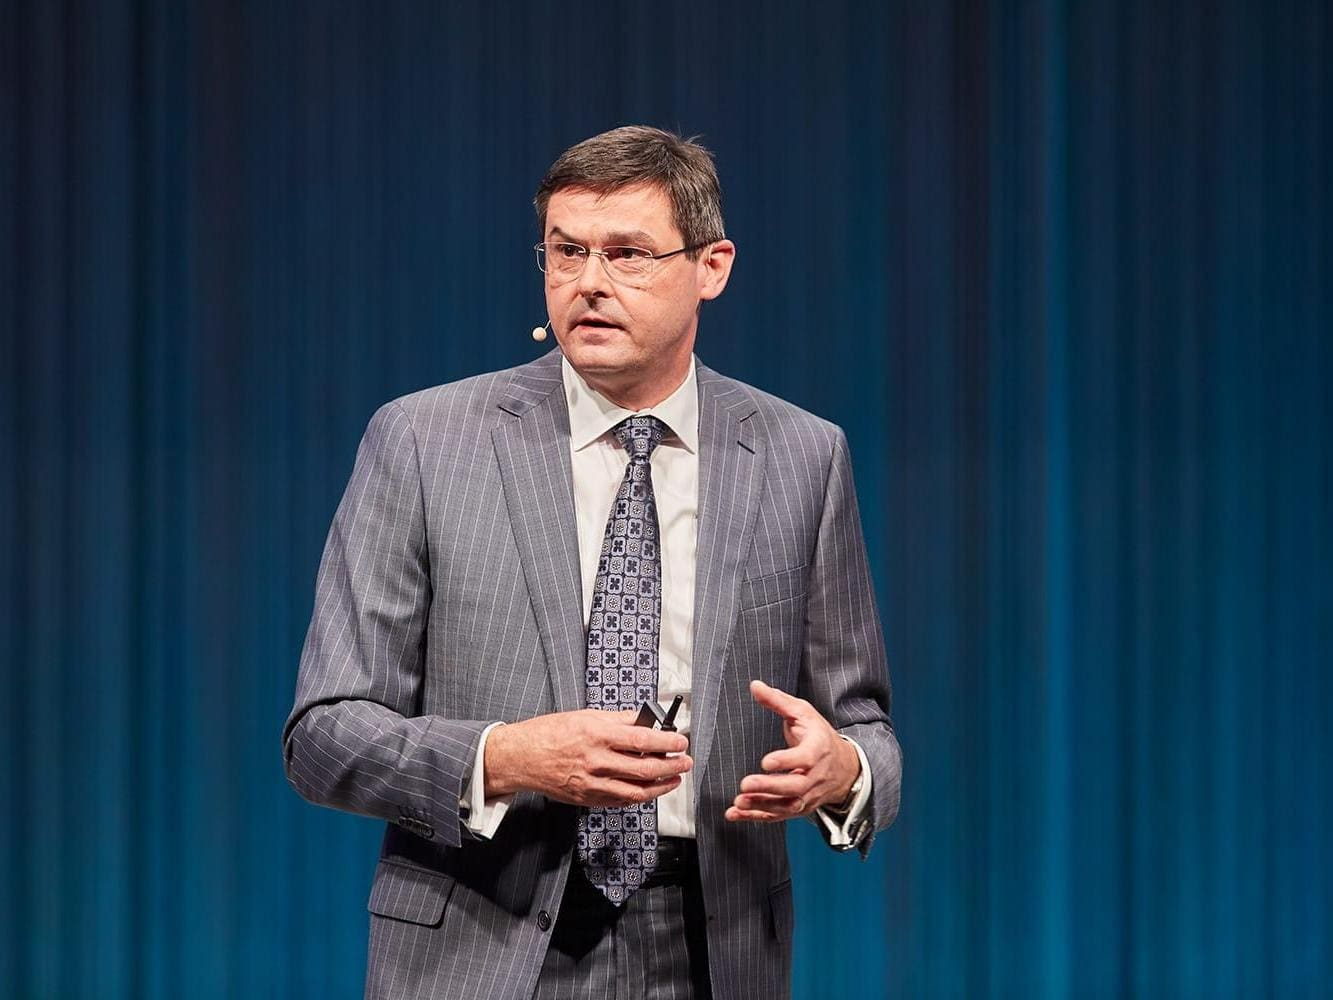 Oliver Schabenberger, COO and CTO of SAS, presenting on stage at an event